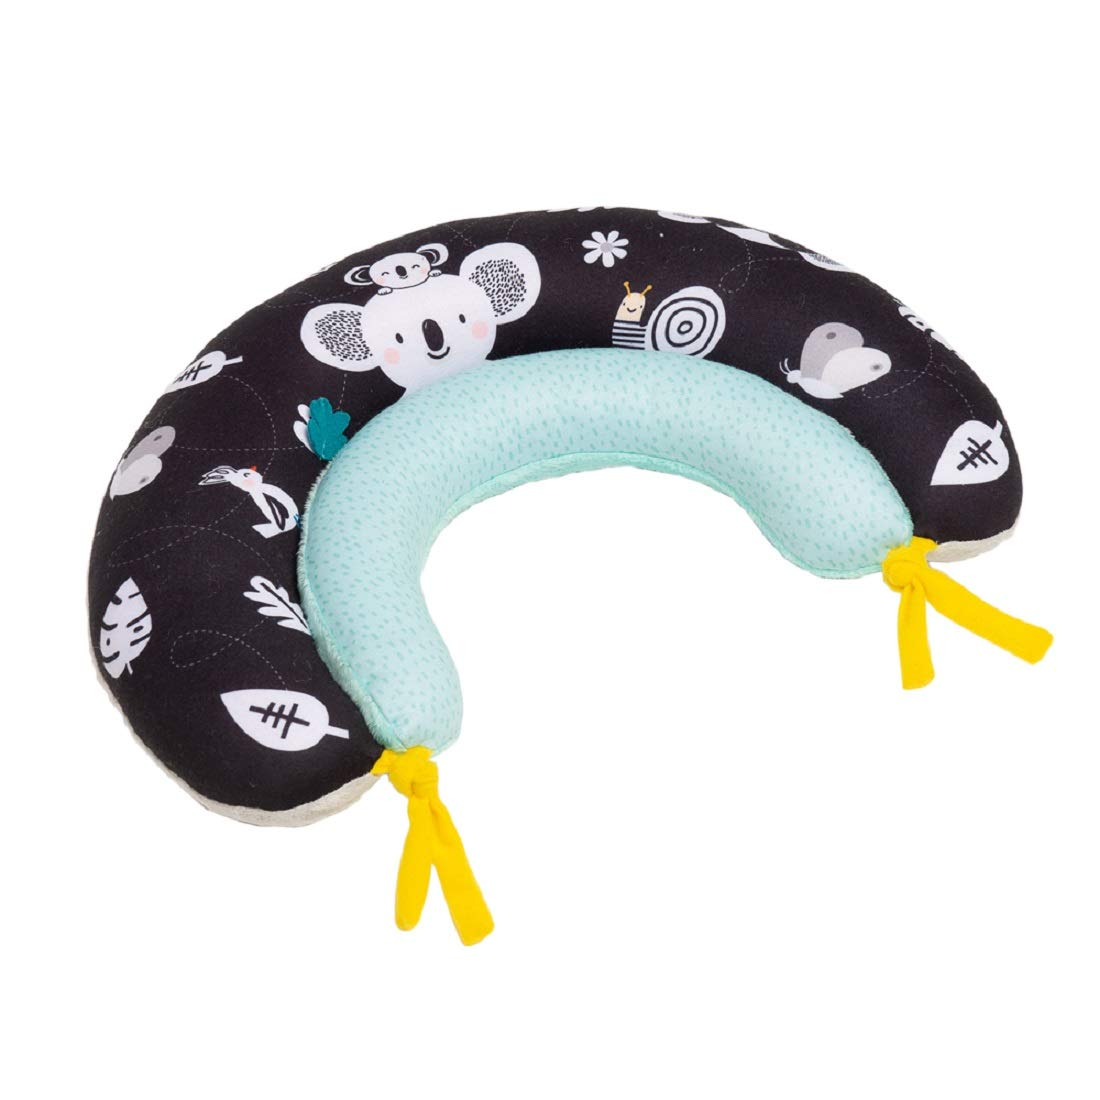 Taf Toys 2 in 1 Tummy-Time Soft Baby Developmental Pillow for 0-5 Months, Newborns and Infants Fun Play Time on Tummy